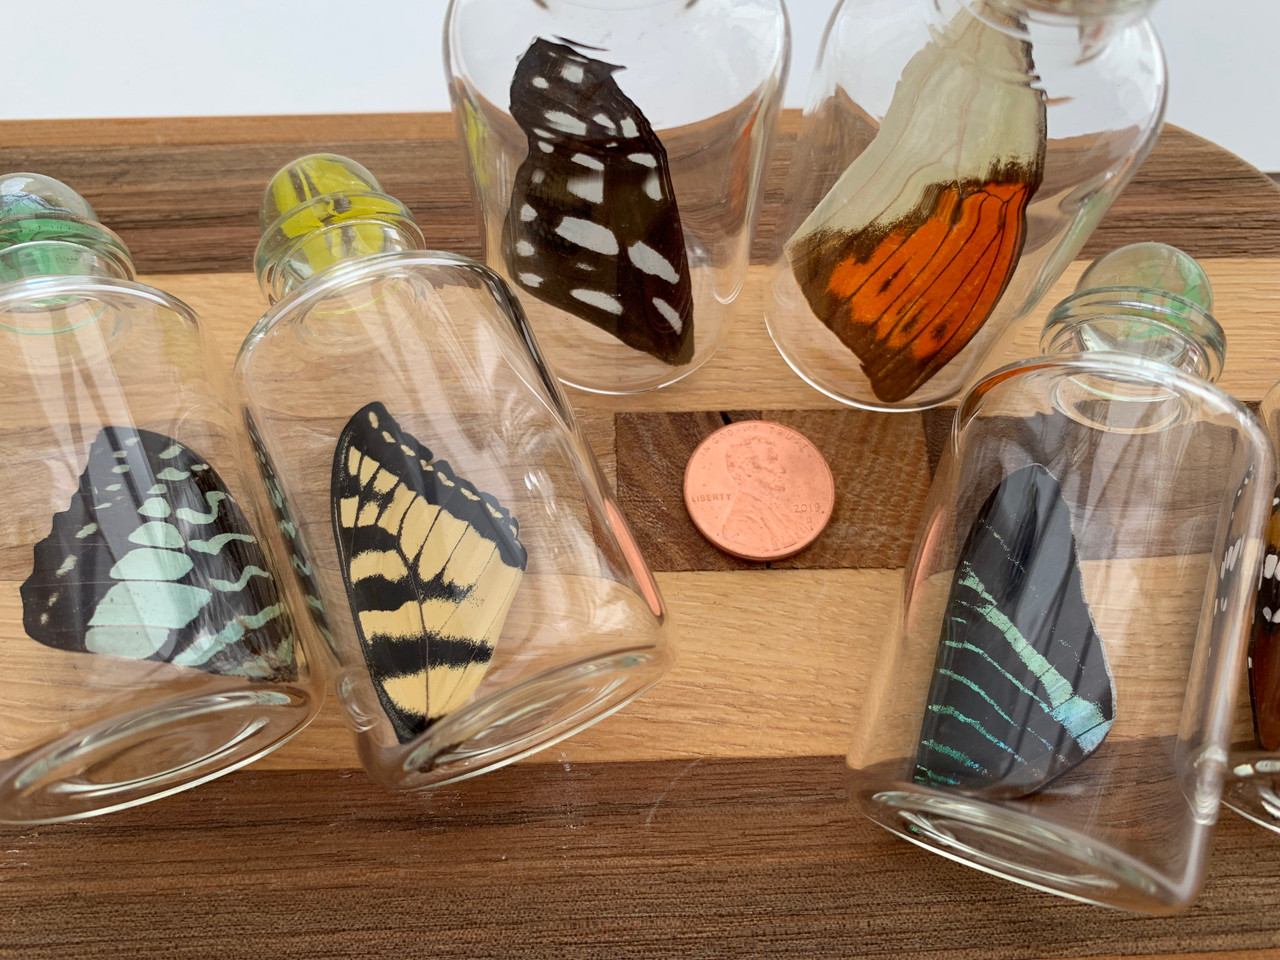 Medium Real Butterfly Wing in a Jar with Marble Closure - Fairy Bottle